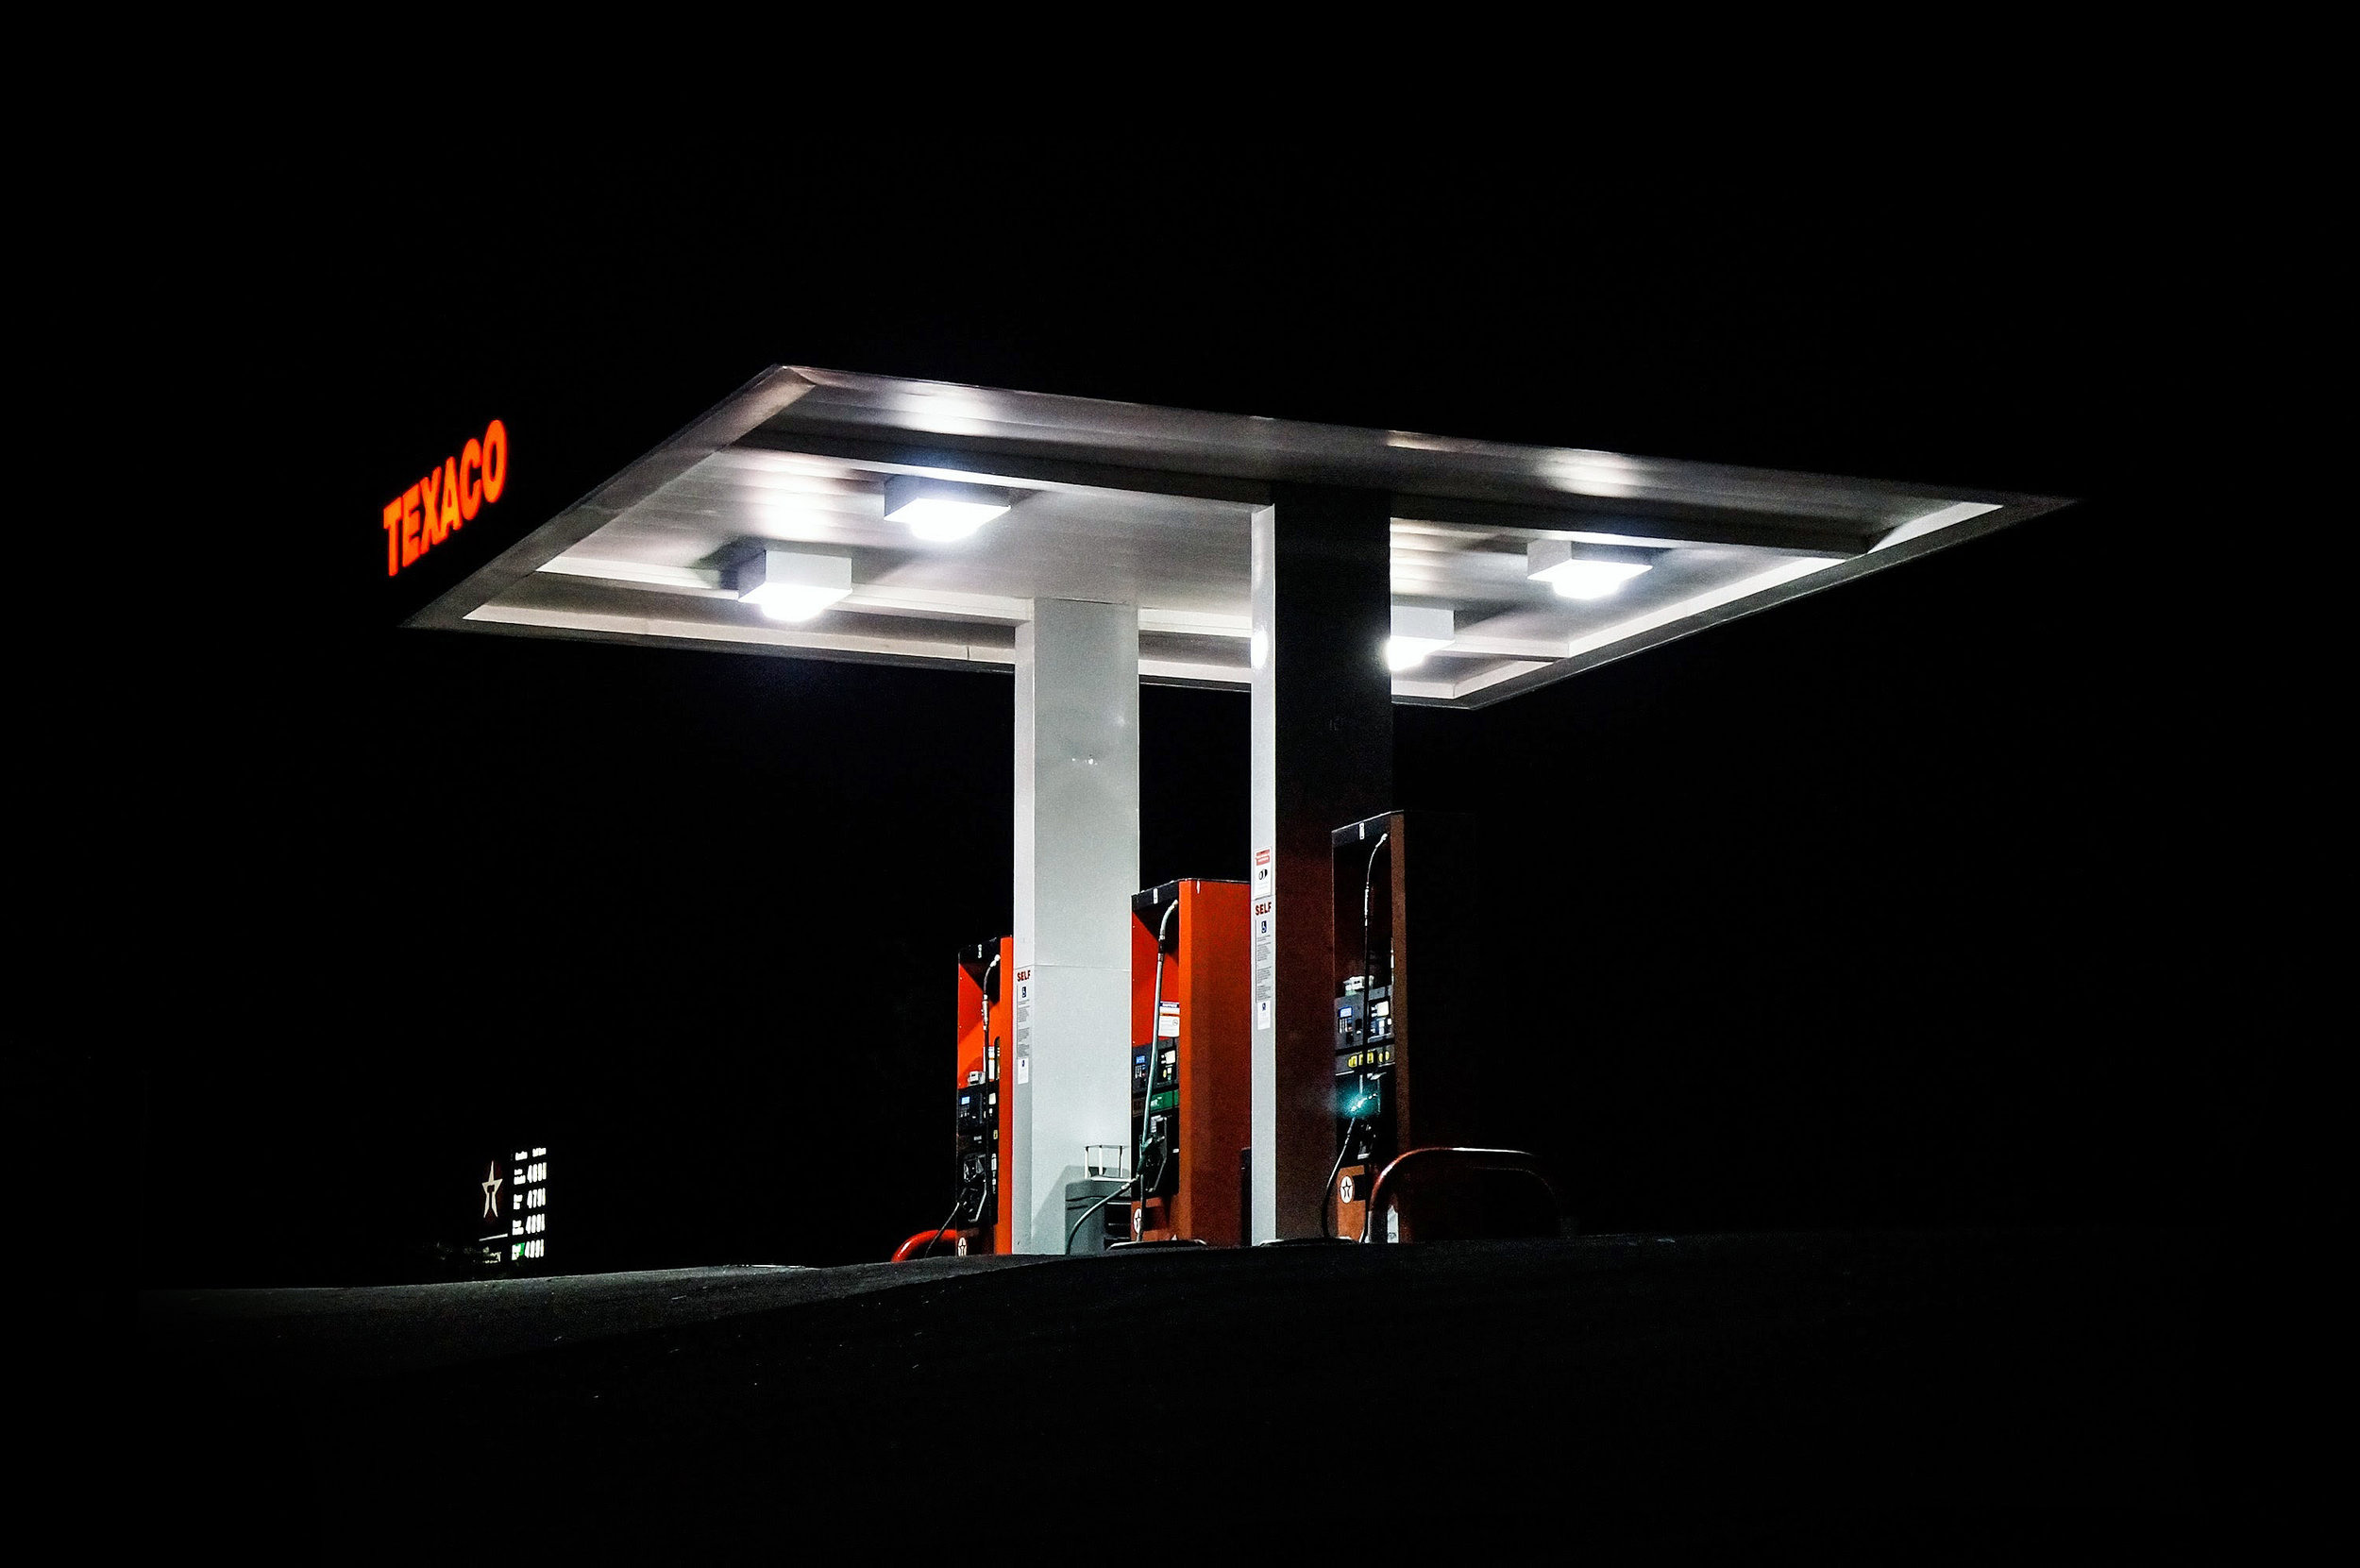 Many petroleum corporations, realizing that fossil fuels are increasingly becoming limiting resources, have begun investing in biofuel technologies that use CRISPR. Photo credit: Maarten van der Heuvel